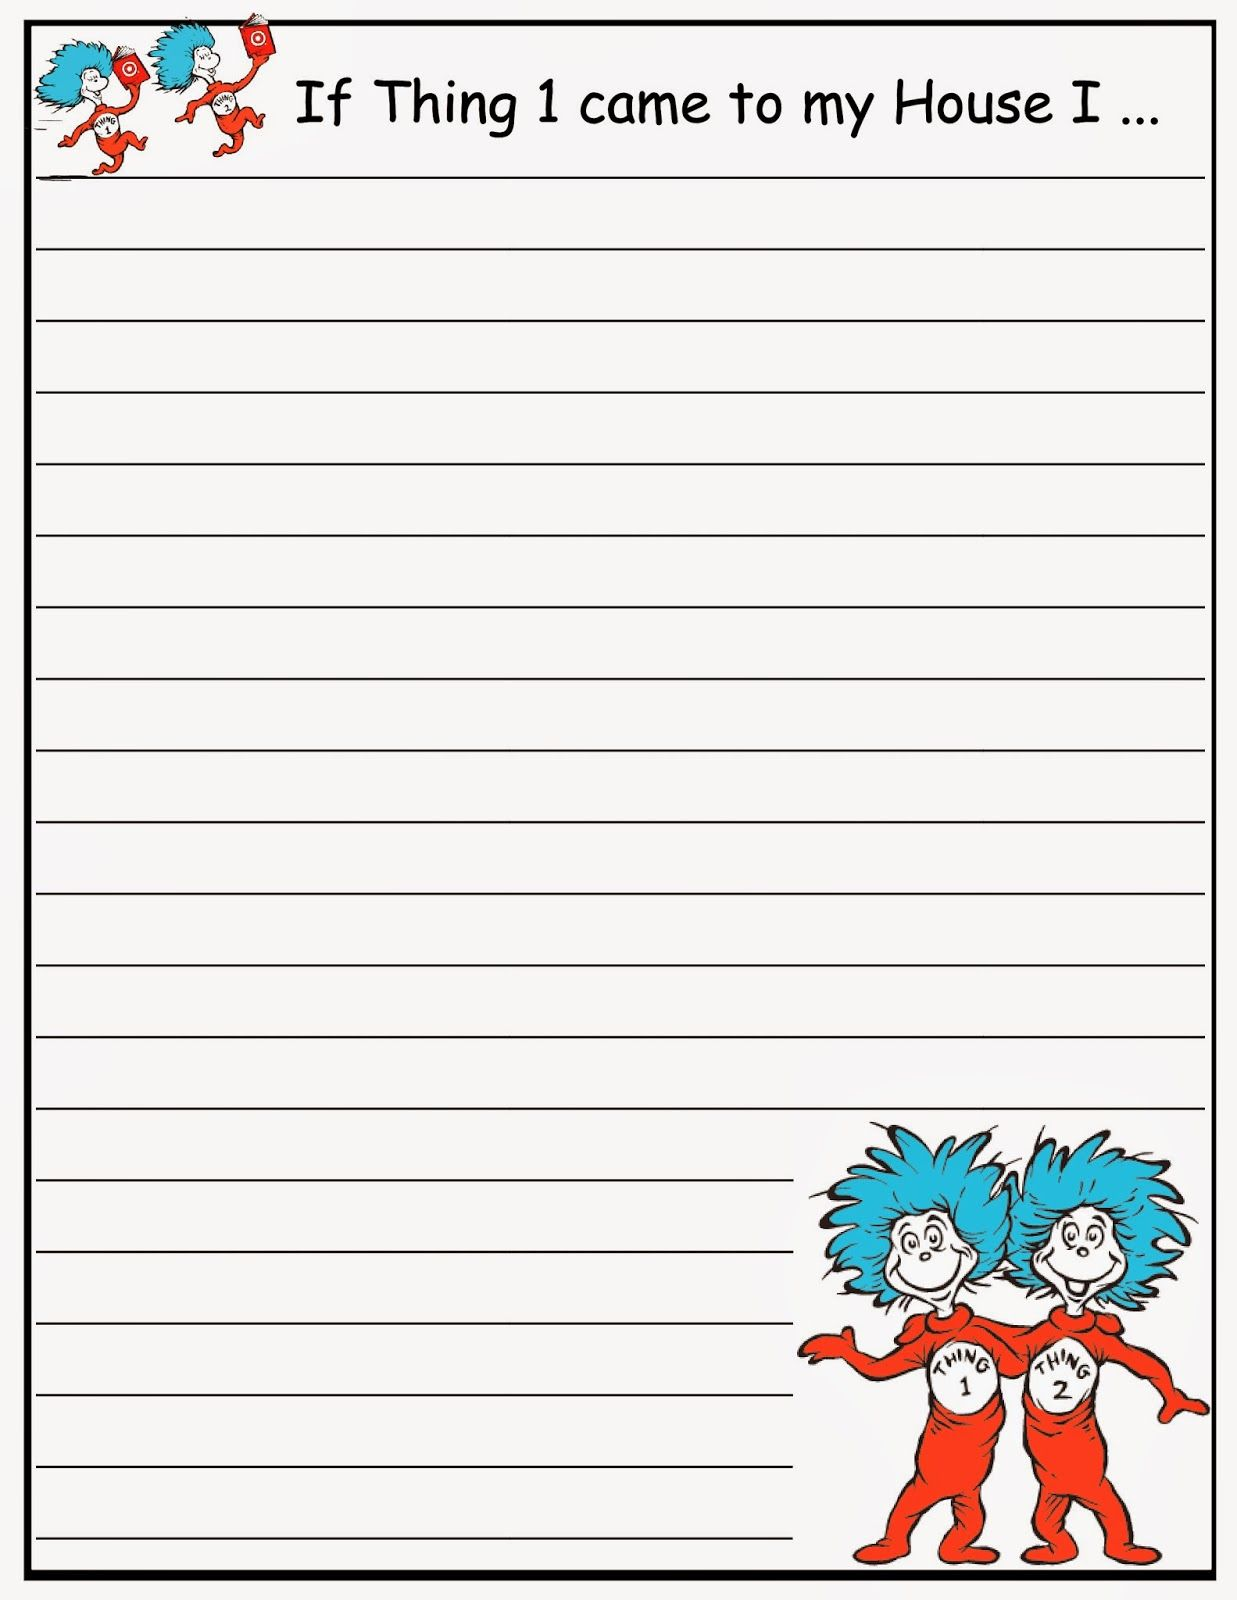 moreover Theimaginationnook  Read Across America   All Things Literacy together with 564 best Dr  Seuss images on Pinterest   Dr suess  Dr seuss likewise The Foot Book furthermore Dr  Seuss All About Me book    free printable   Dr  Seuss Fun moreover  furthermore November   Thanksgiving Bulletin Board Ideas also FREE List of Dr  Seuss Activities and Printables  Cat in the Hat together with 930 best Dr  Seuss images on Pinterest   Preschool themes  Dr furthermore Dr  Seuss bookmarks to color   H Dr  Seuss Crafts and Games 4 Kids besides 53 best Dr Seuss   the Lorax images on Pinterest   Lorax  The. on best dr seuss images on pinterest clroom door ideas reading week hat book activities trees theme worksheets march is month math printable 2nd grade